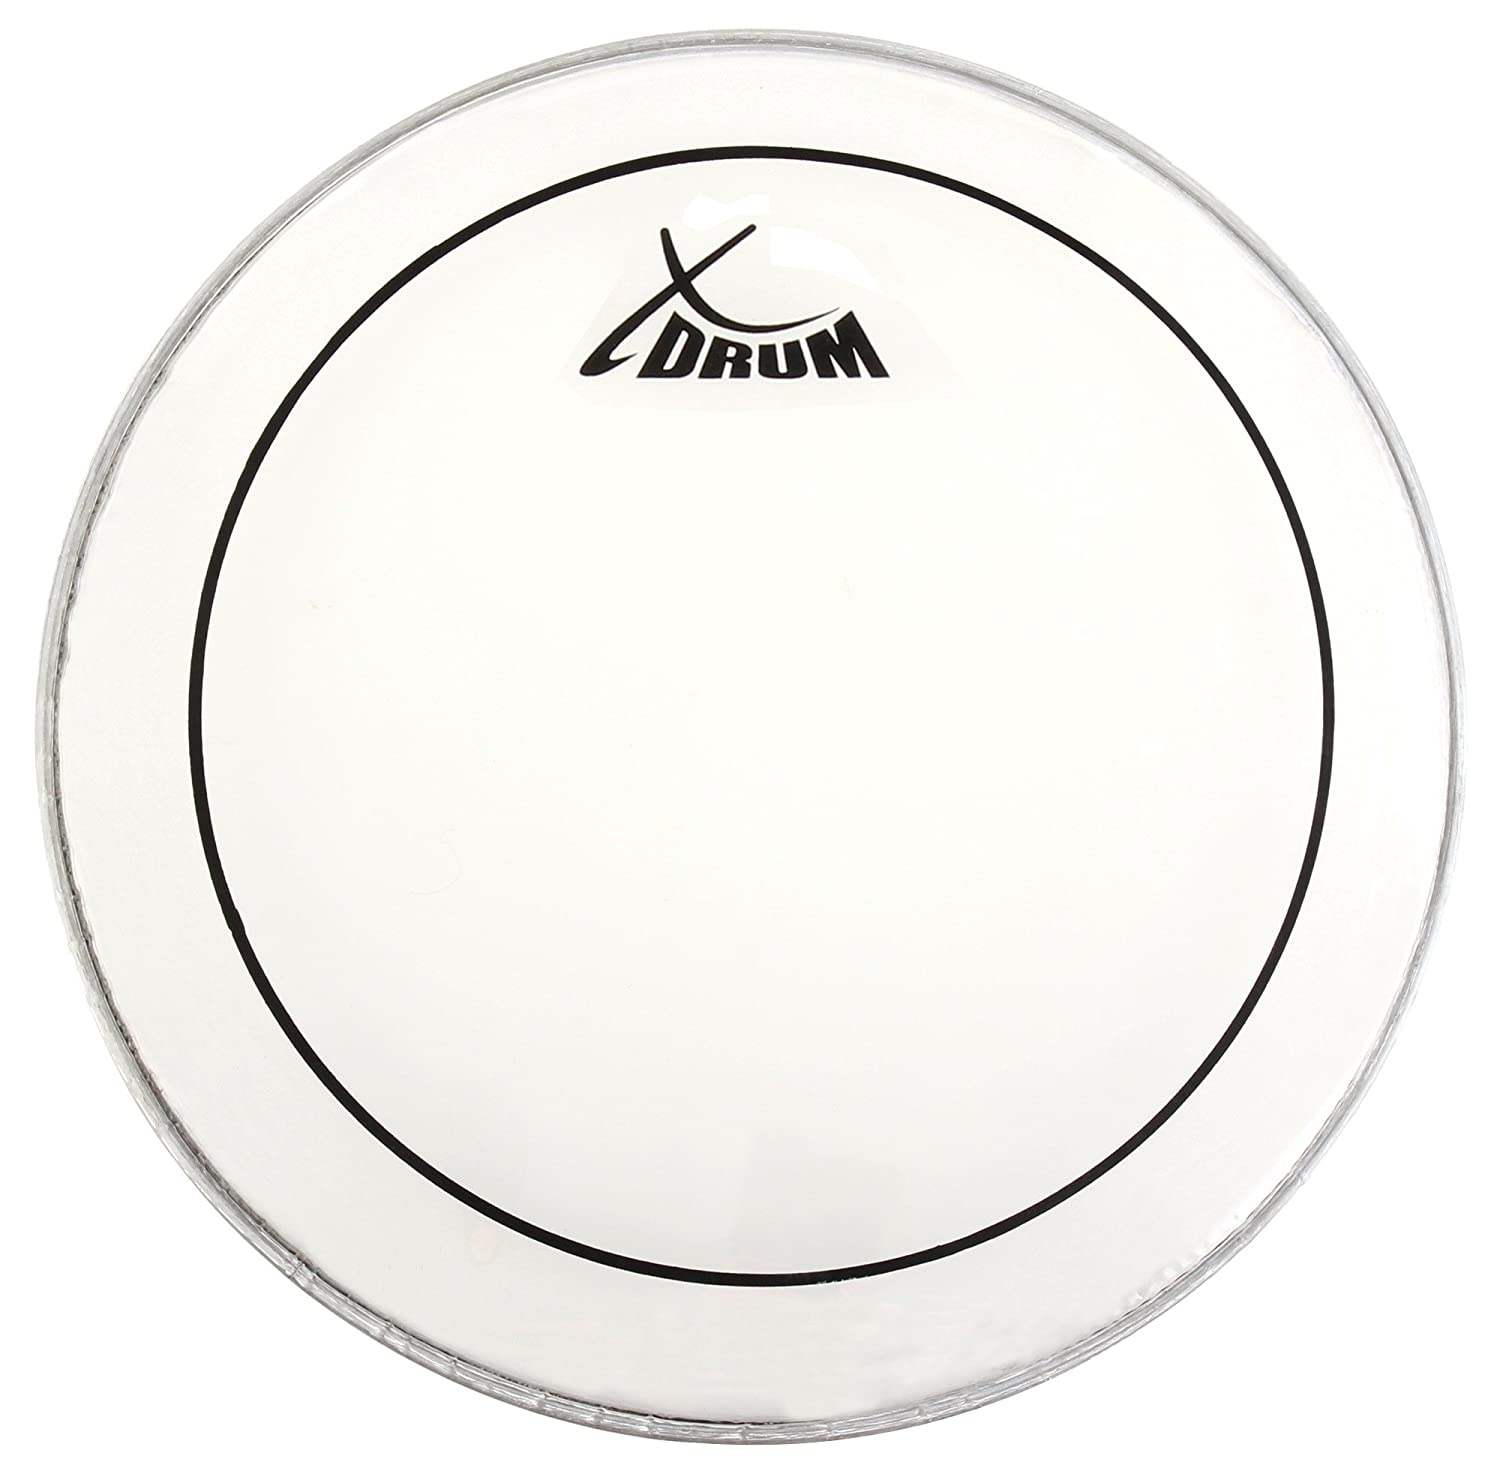 "XDrum DH22OH - Parche bombo aceite hidráulico 22"" 00023933"